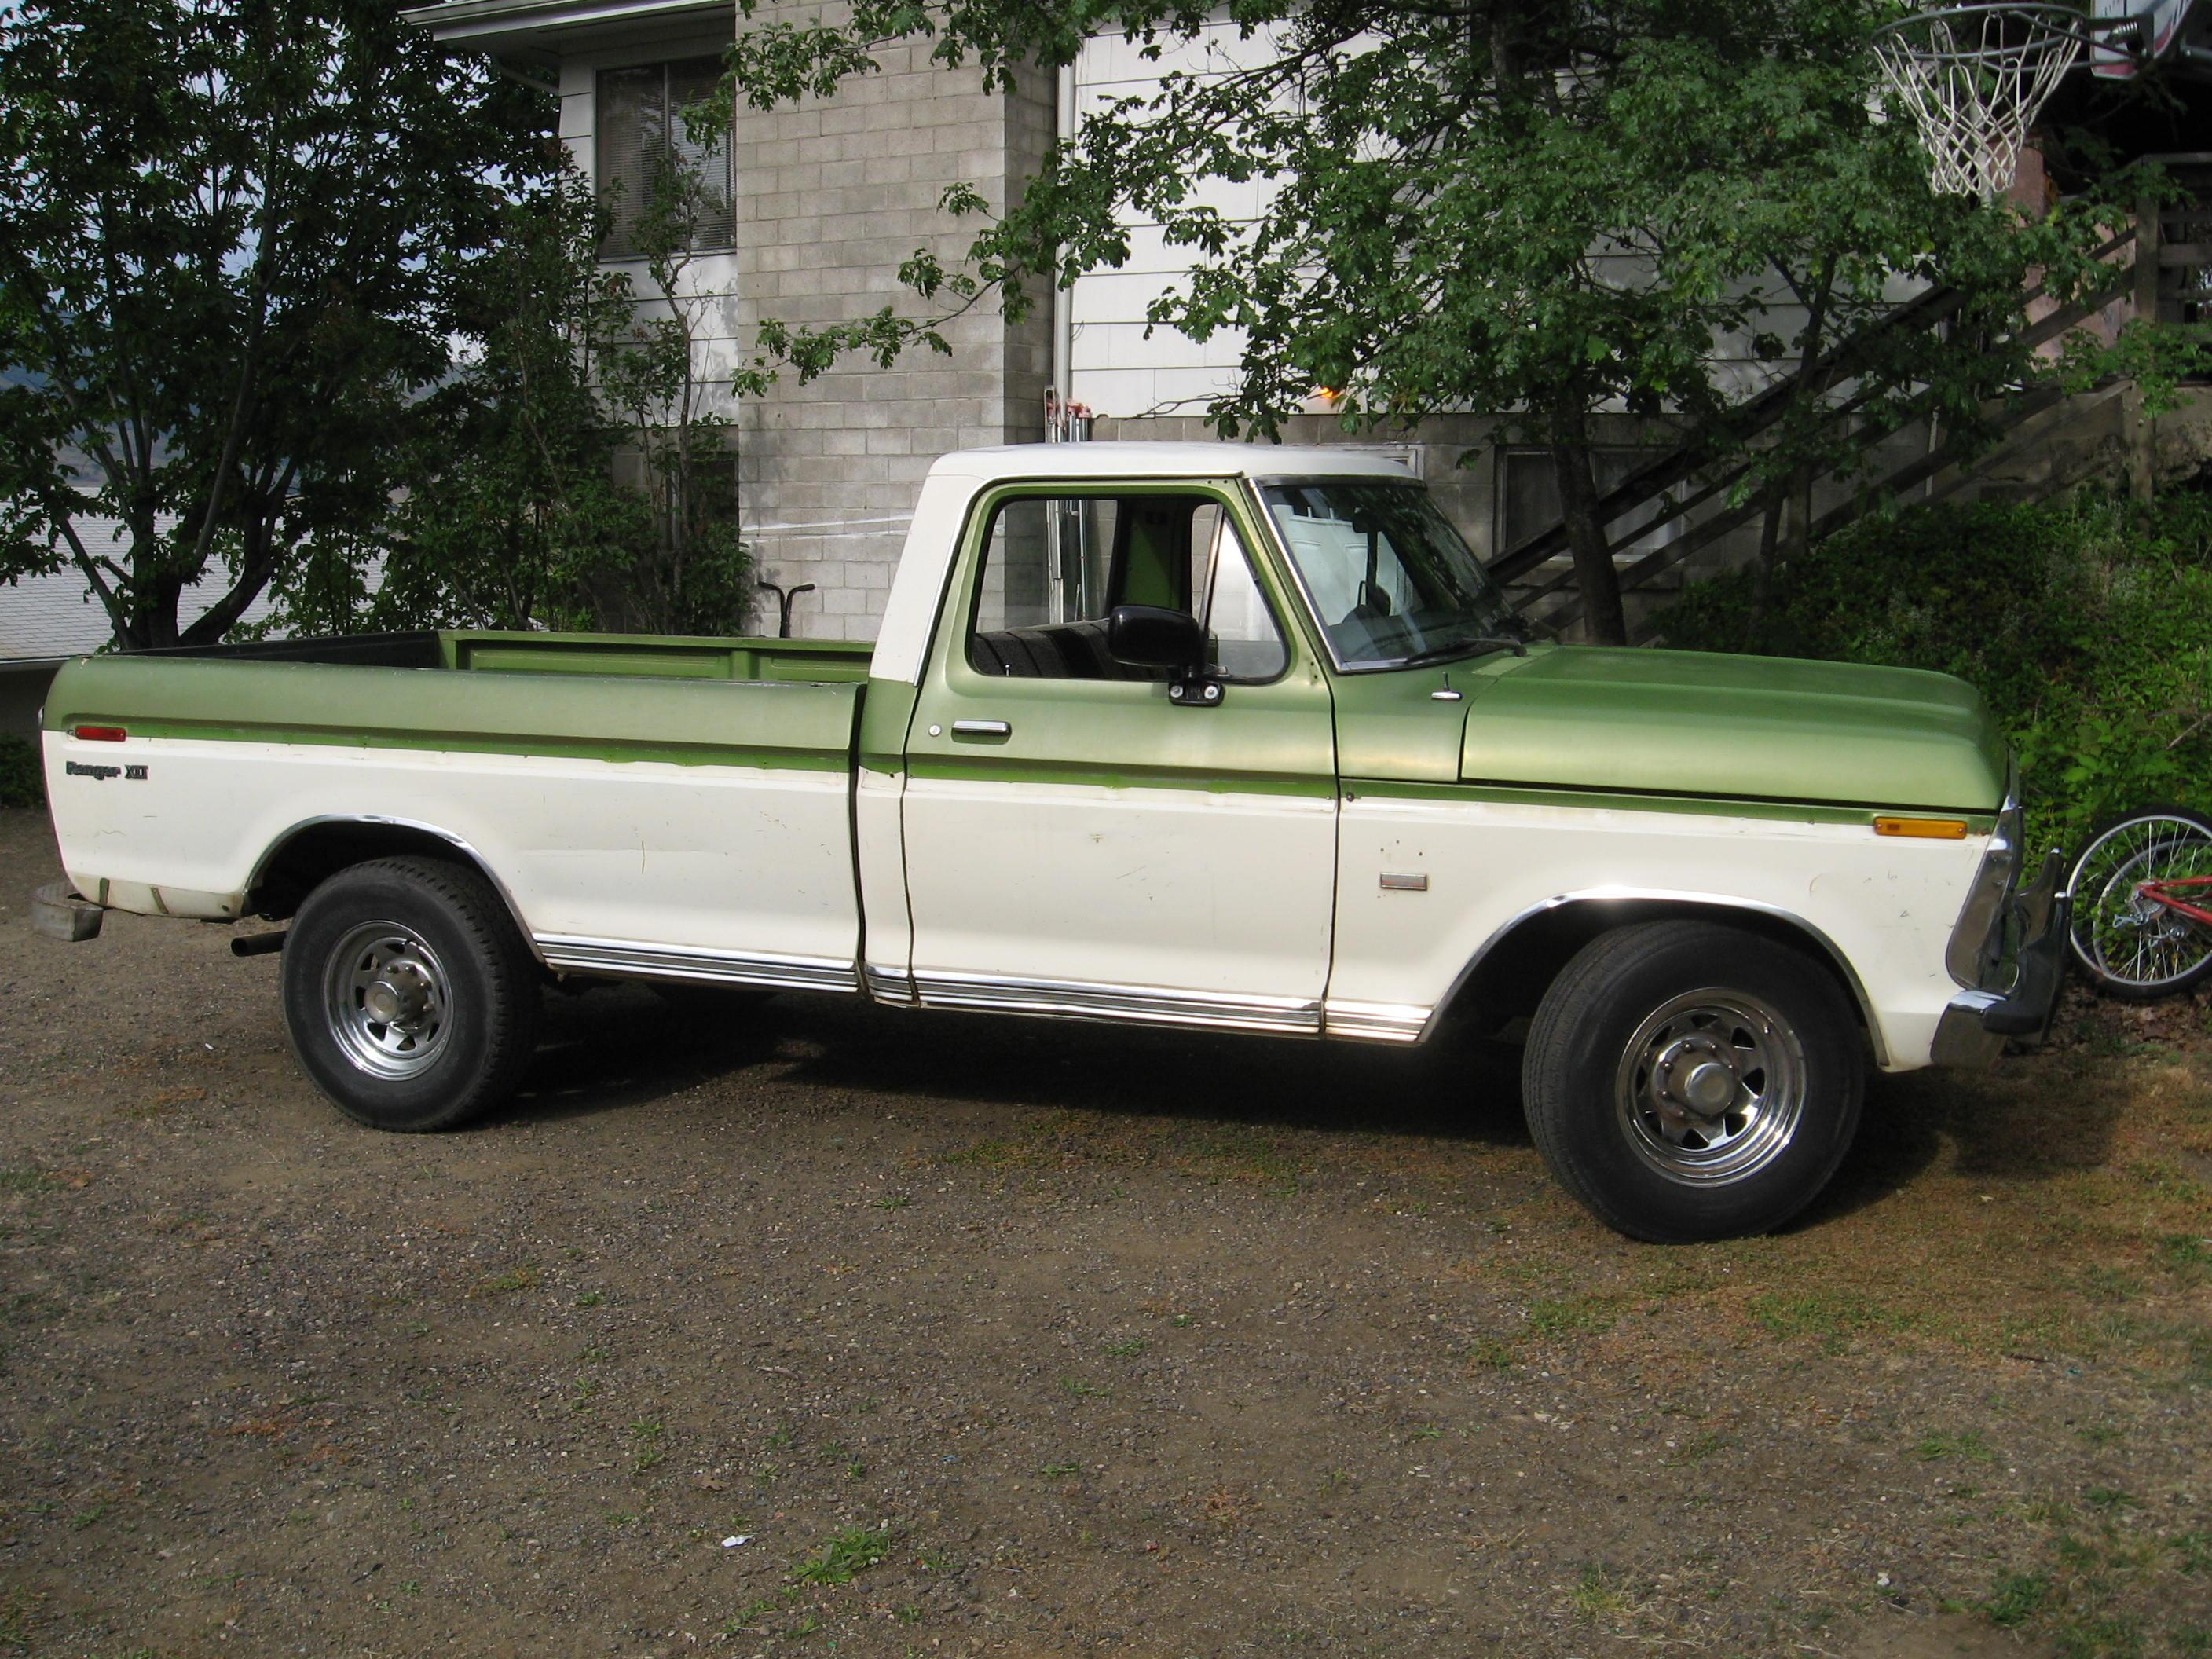 Blakesanders 1973 Ford F250 Crew Cab Specs Photos Modification 1969 F 250 4x4 For Sale 38674590001 Original